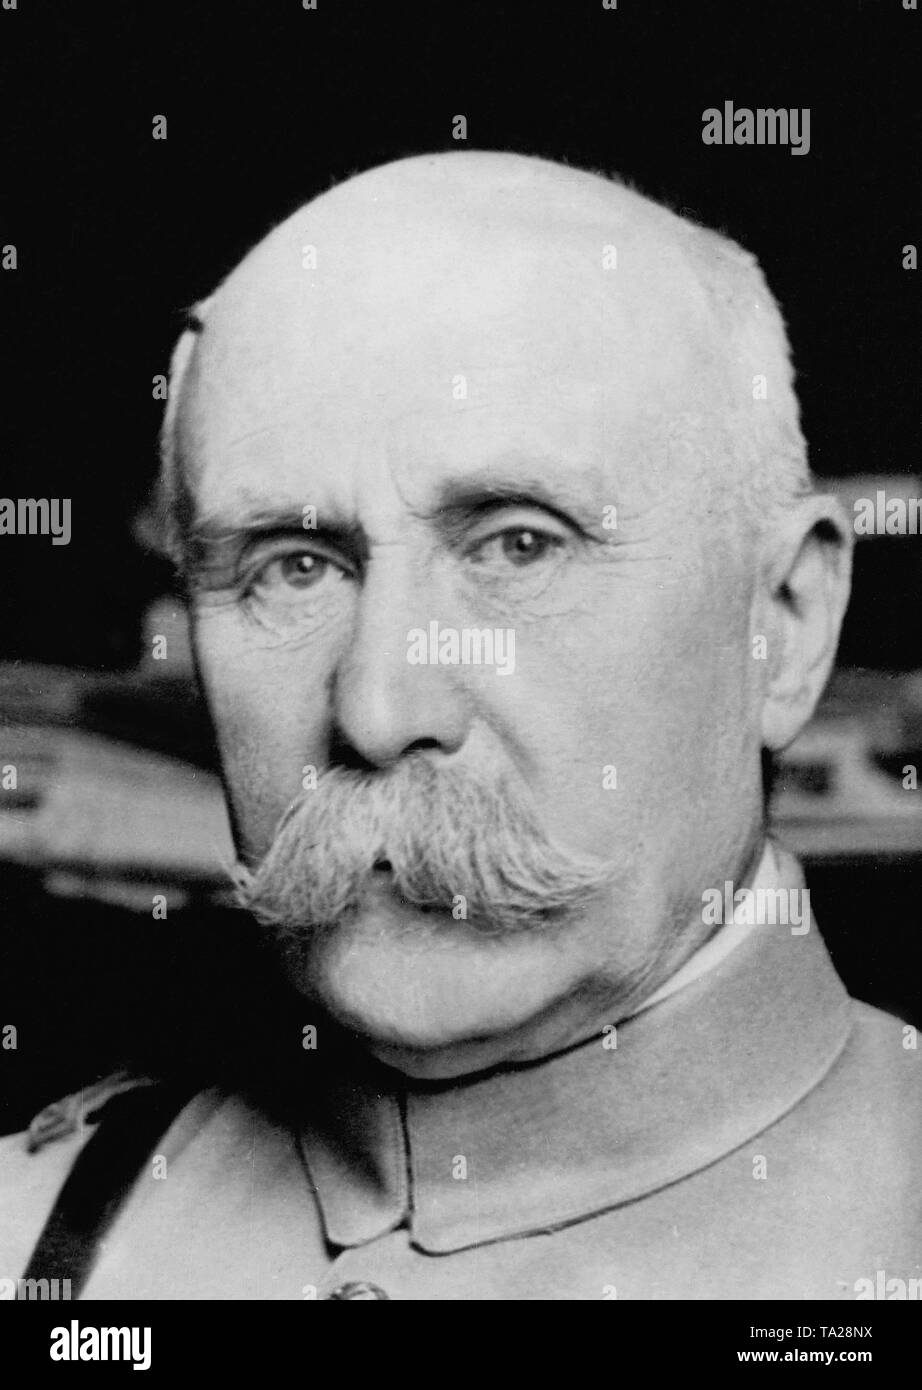 Henri Philippe Petain (1856-1951), French President and Marshal. Undated photo, probably in the 1920s. - Stock Image